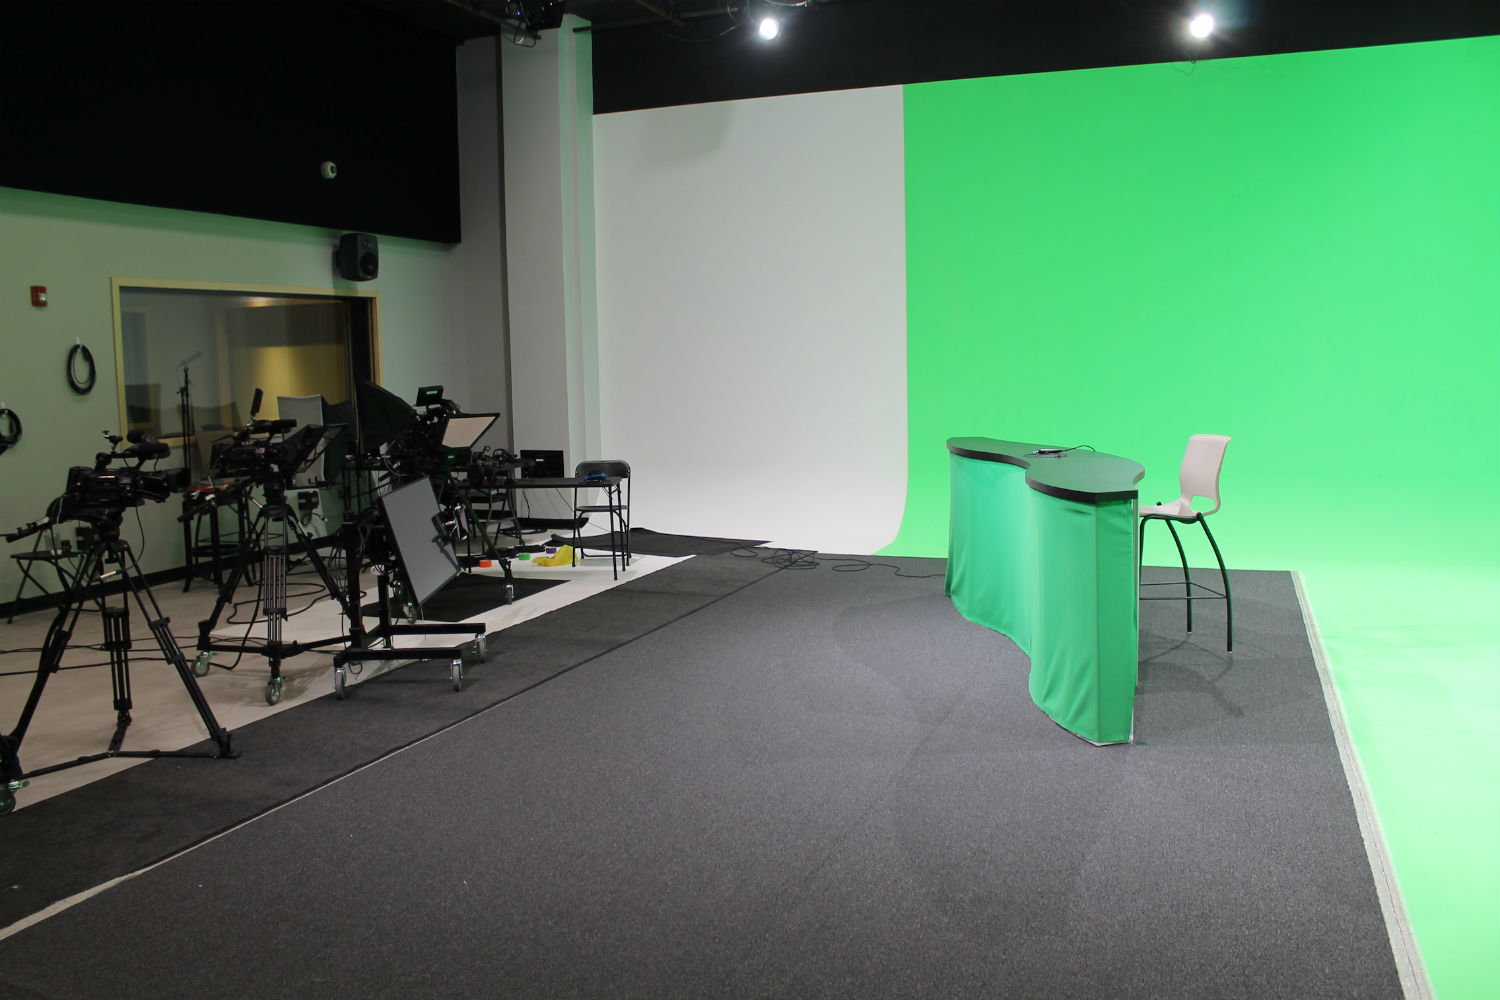 MJH Studios in NJ, designed by WSDG, is a world-class recording and production facility for the main use of creating audio and video healthcare-related content by MJH for their clients. Sounds Stage with green walls